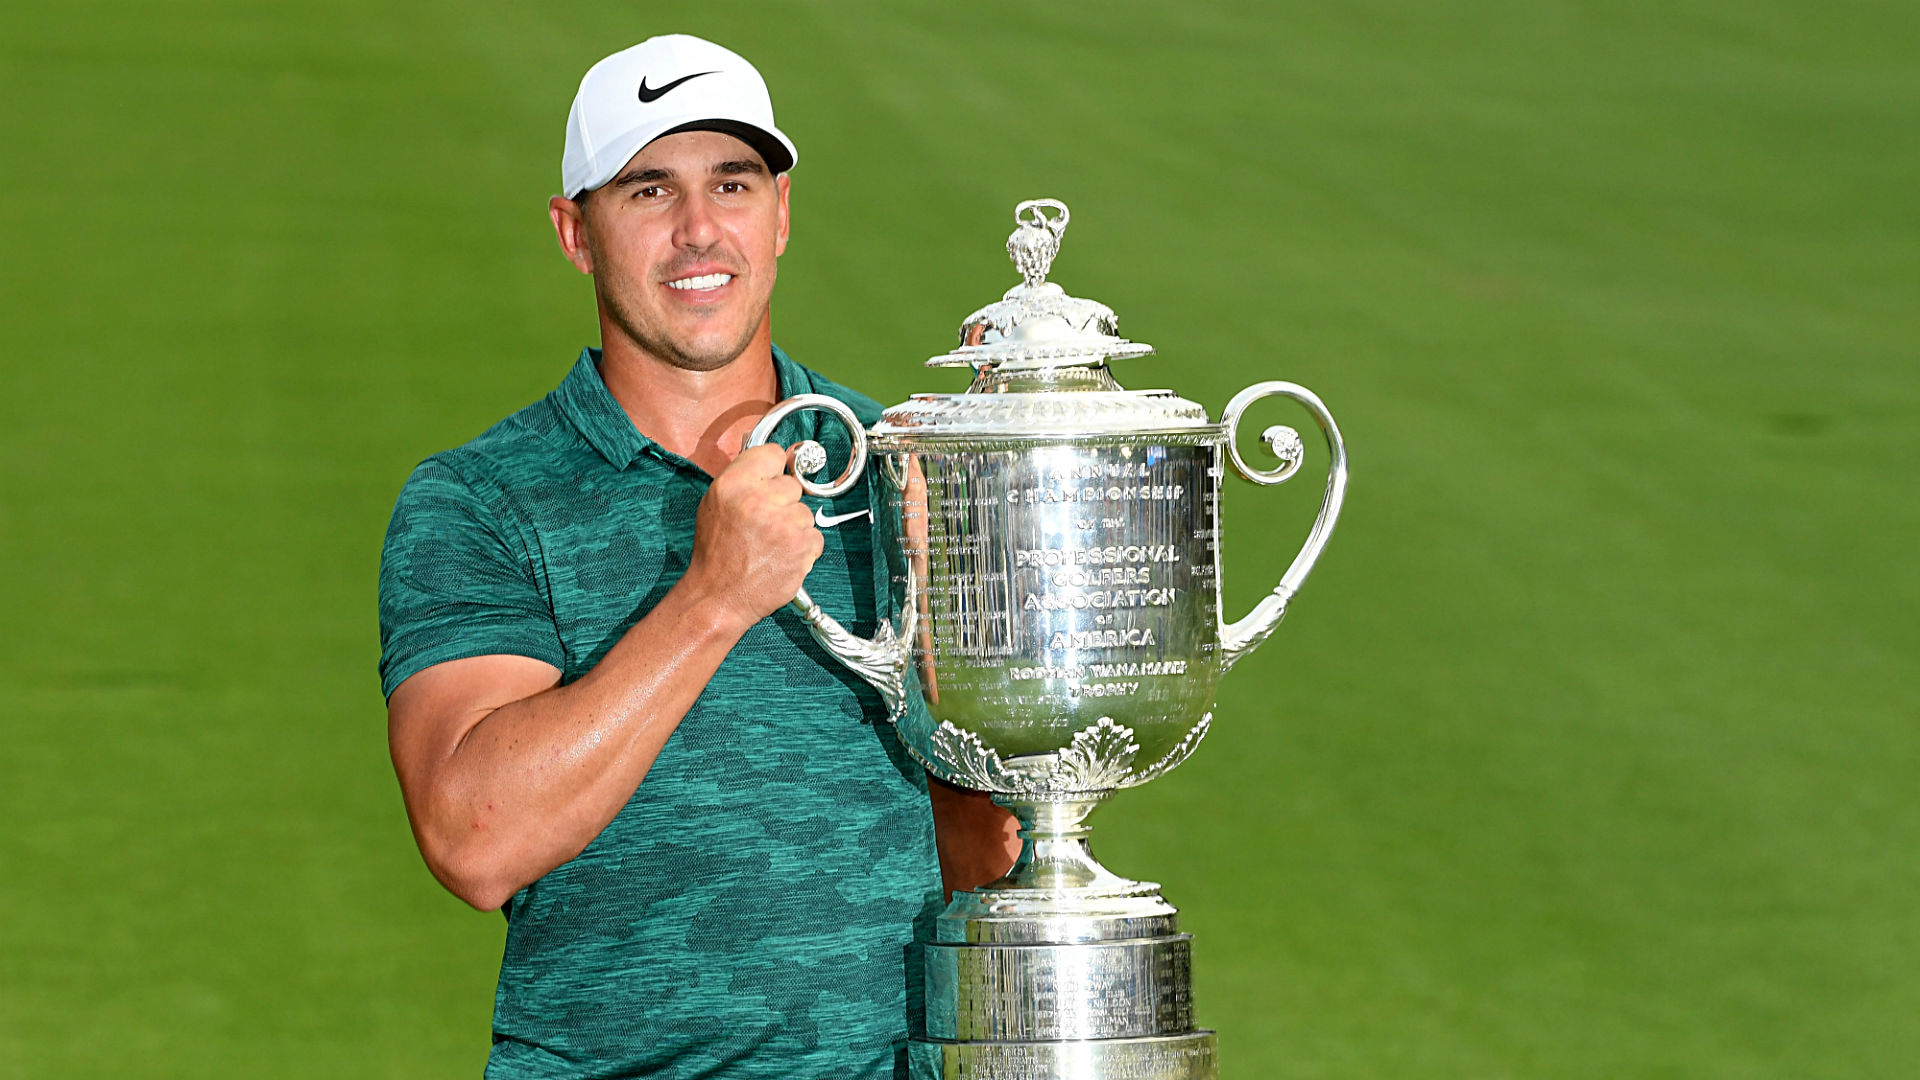 PGA Championship 2020 tee times, TV coverage, live stream & more to watch Thursday's Round 1